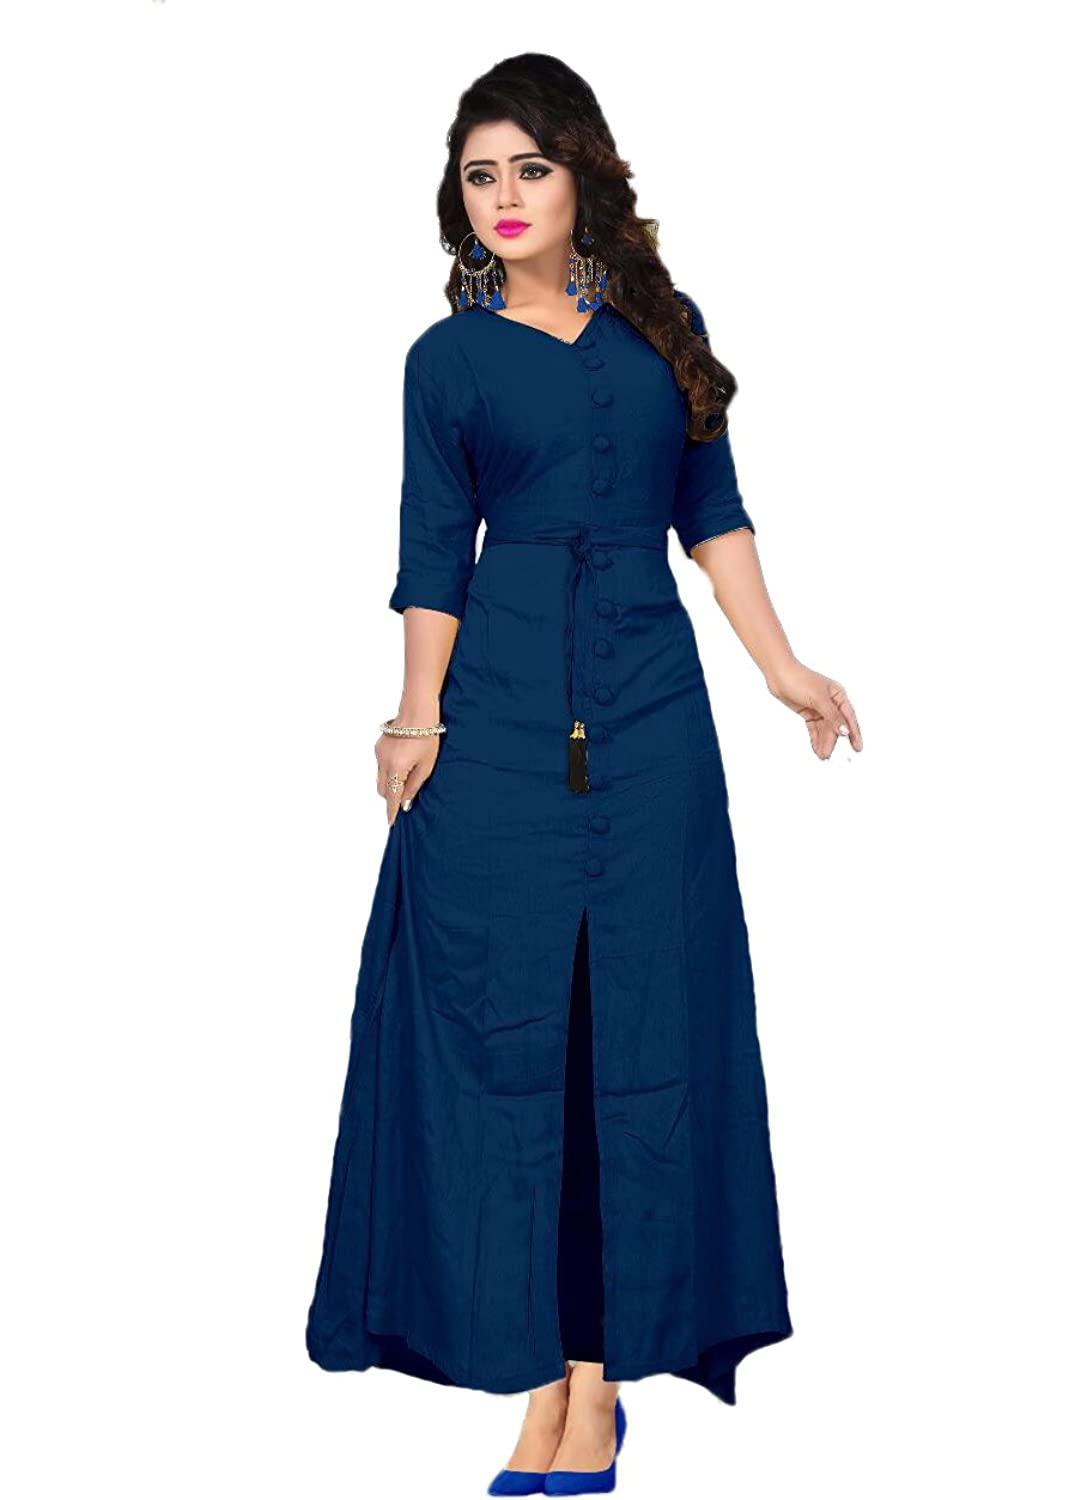 Women V Neck Style Loose Plain Maxi Dresses Casual Long Dresses